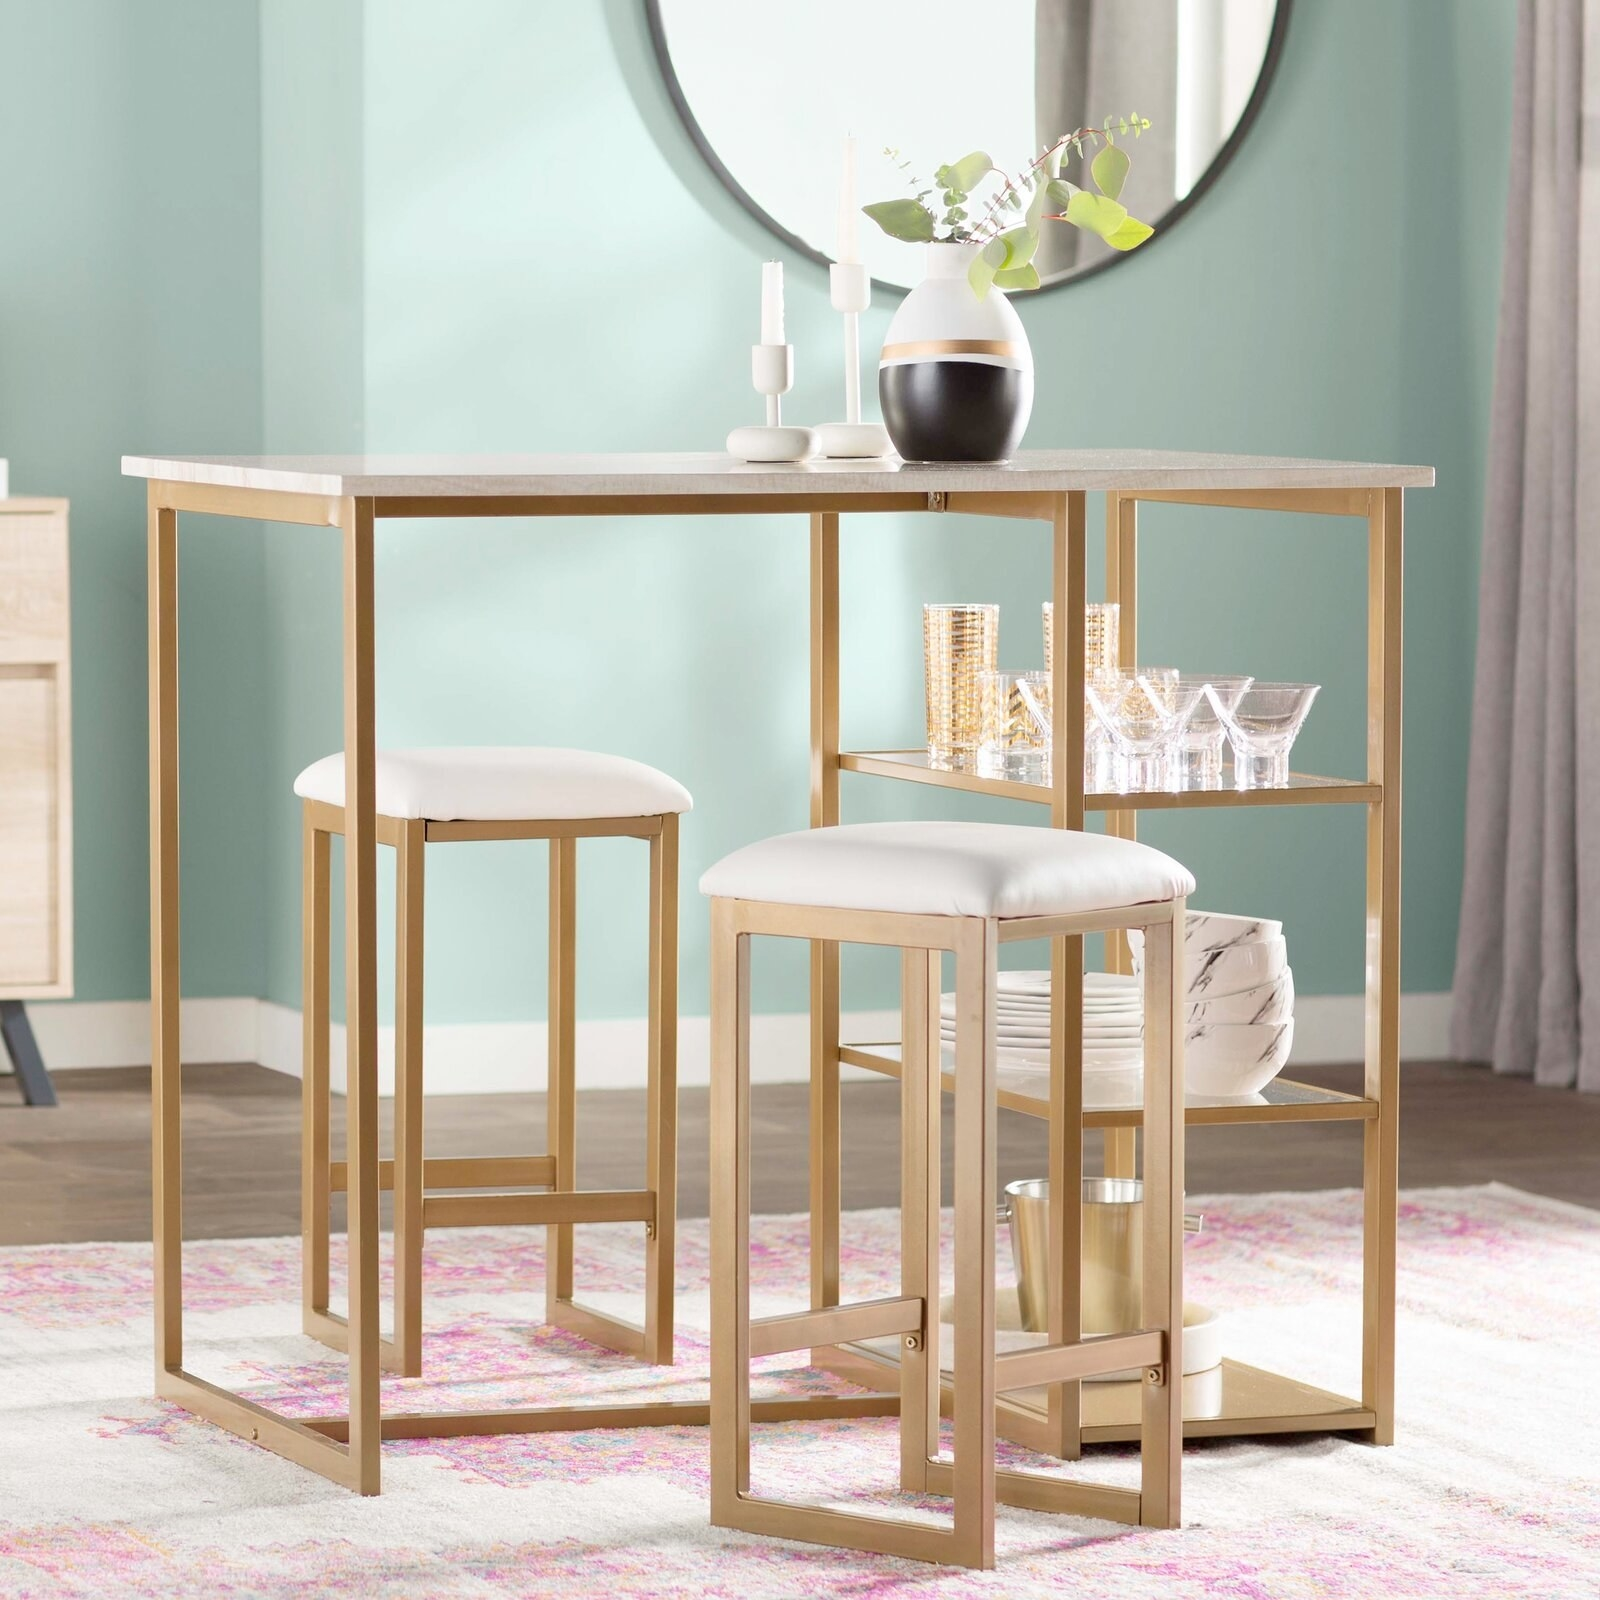 The dining set, which includes two square-cushioned stools and a rectangular table on high legs